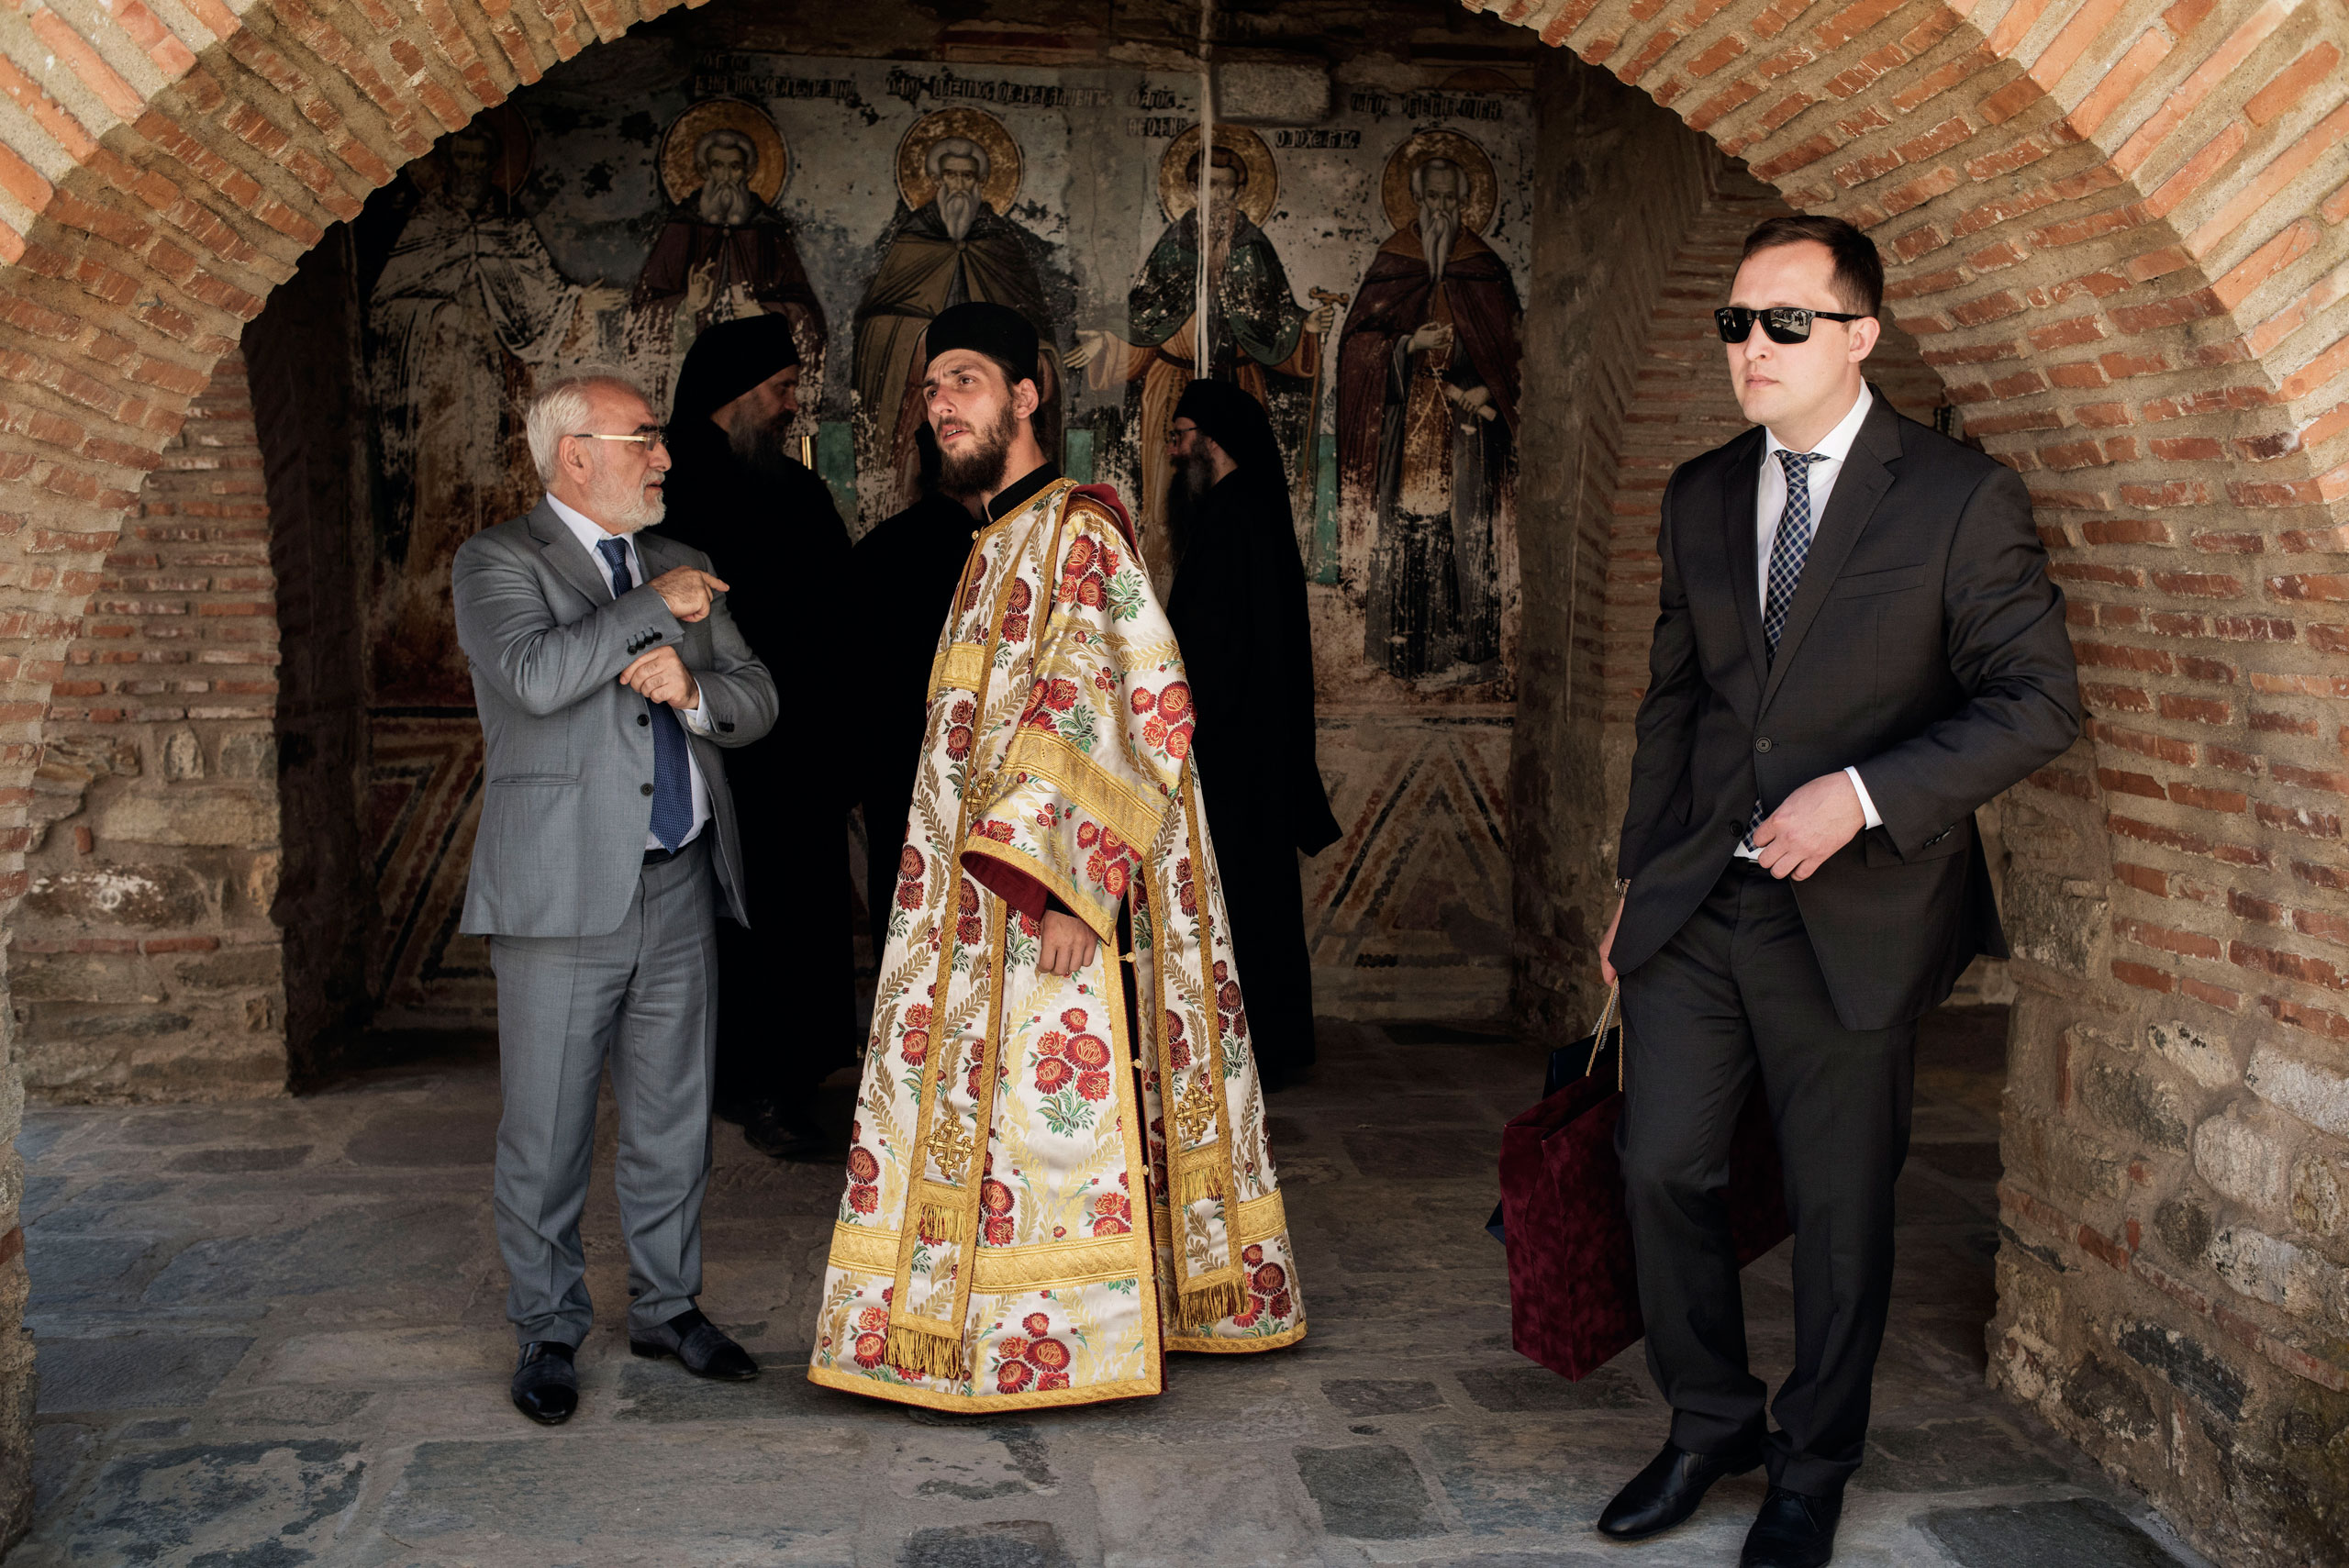 Monks and laymen stand outside the Protaton, the oldest church on Mount Athos, a self-governing monastic community in northern Greece, May 28, 2016.